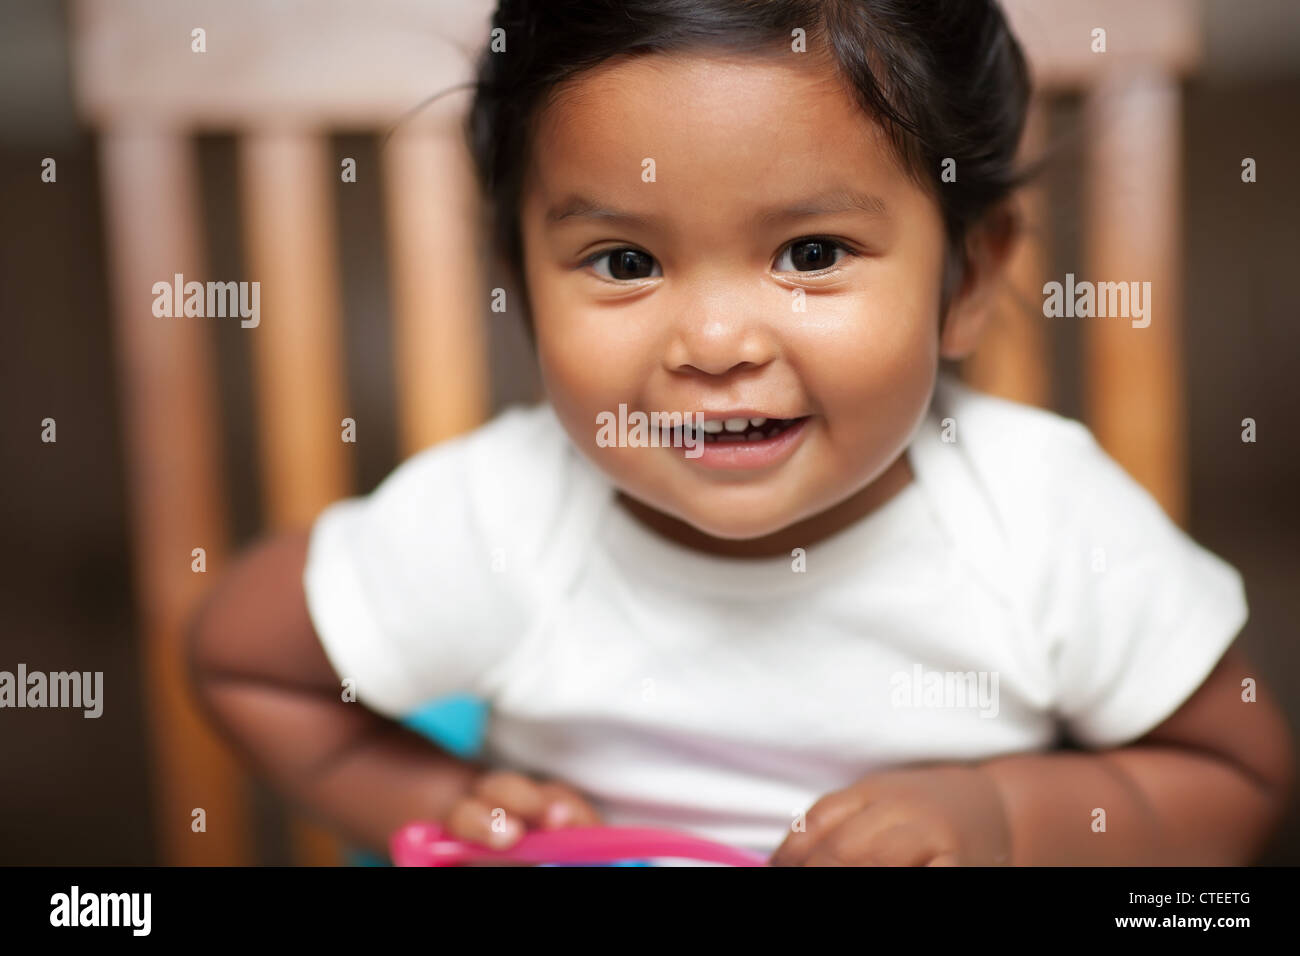 excited baby girl holding a spoon and sitting on a booster seat - Stock Image